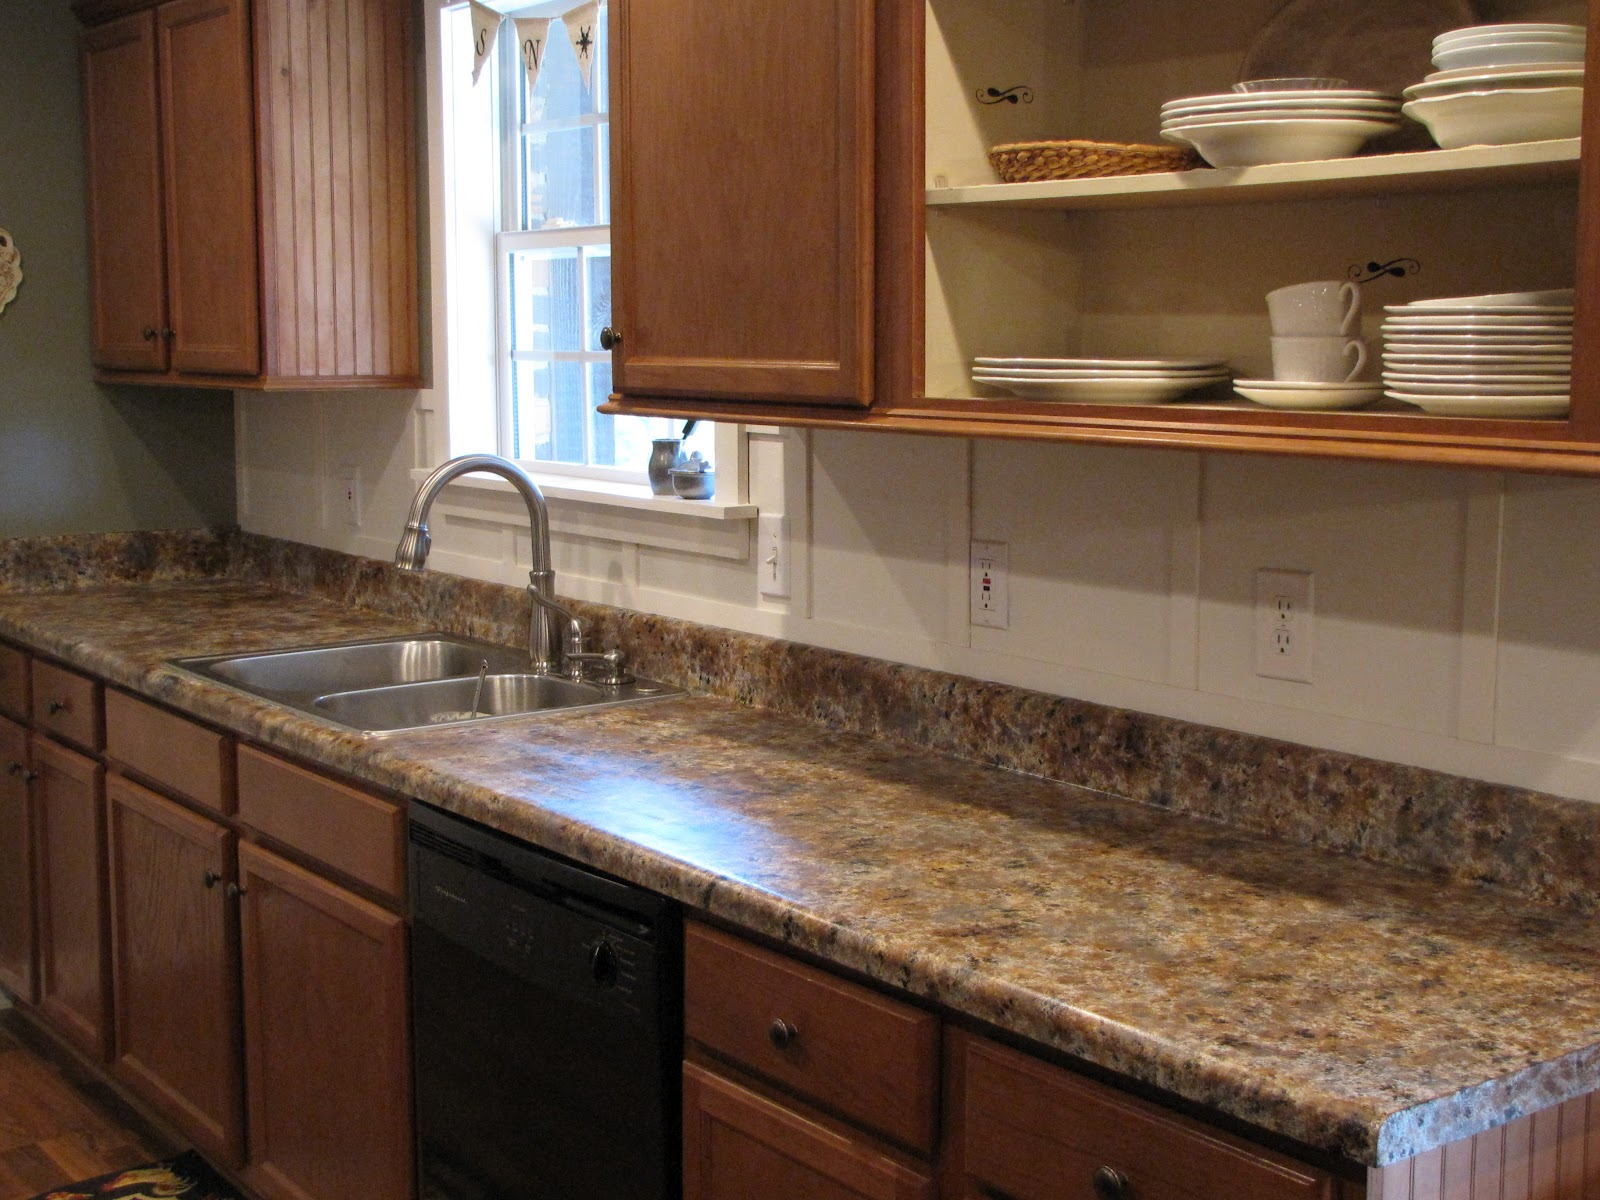 Countertops : Painting Laminate Countertops In The Kitchen